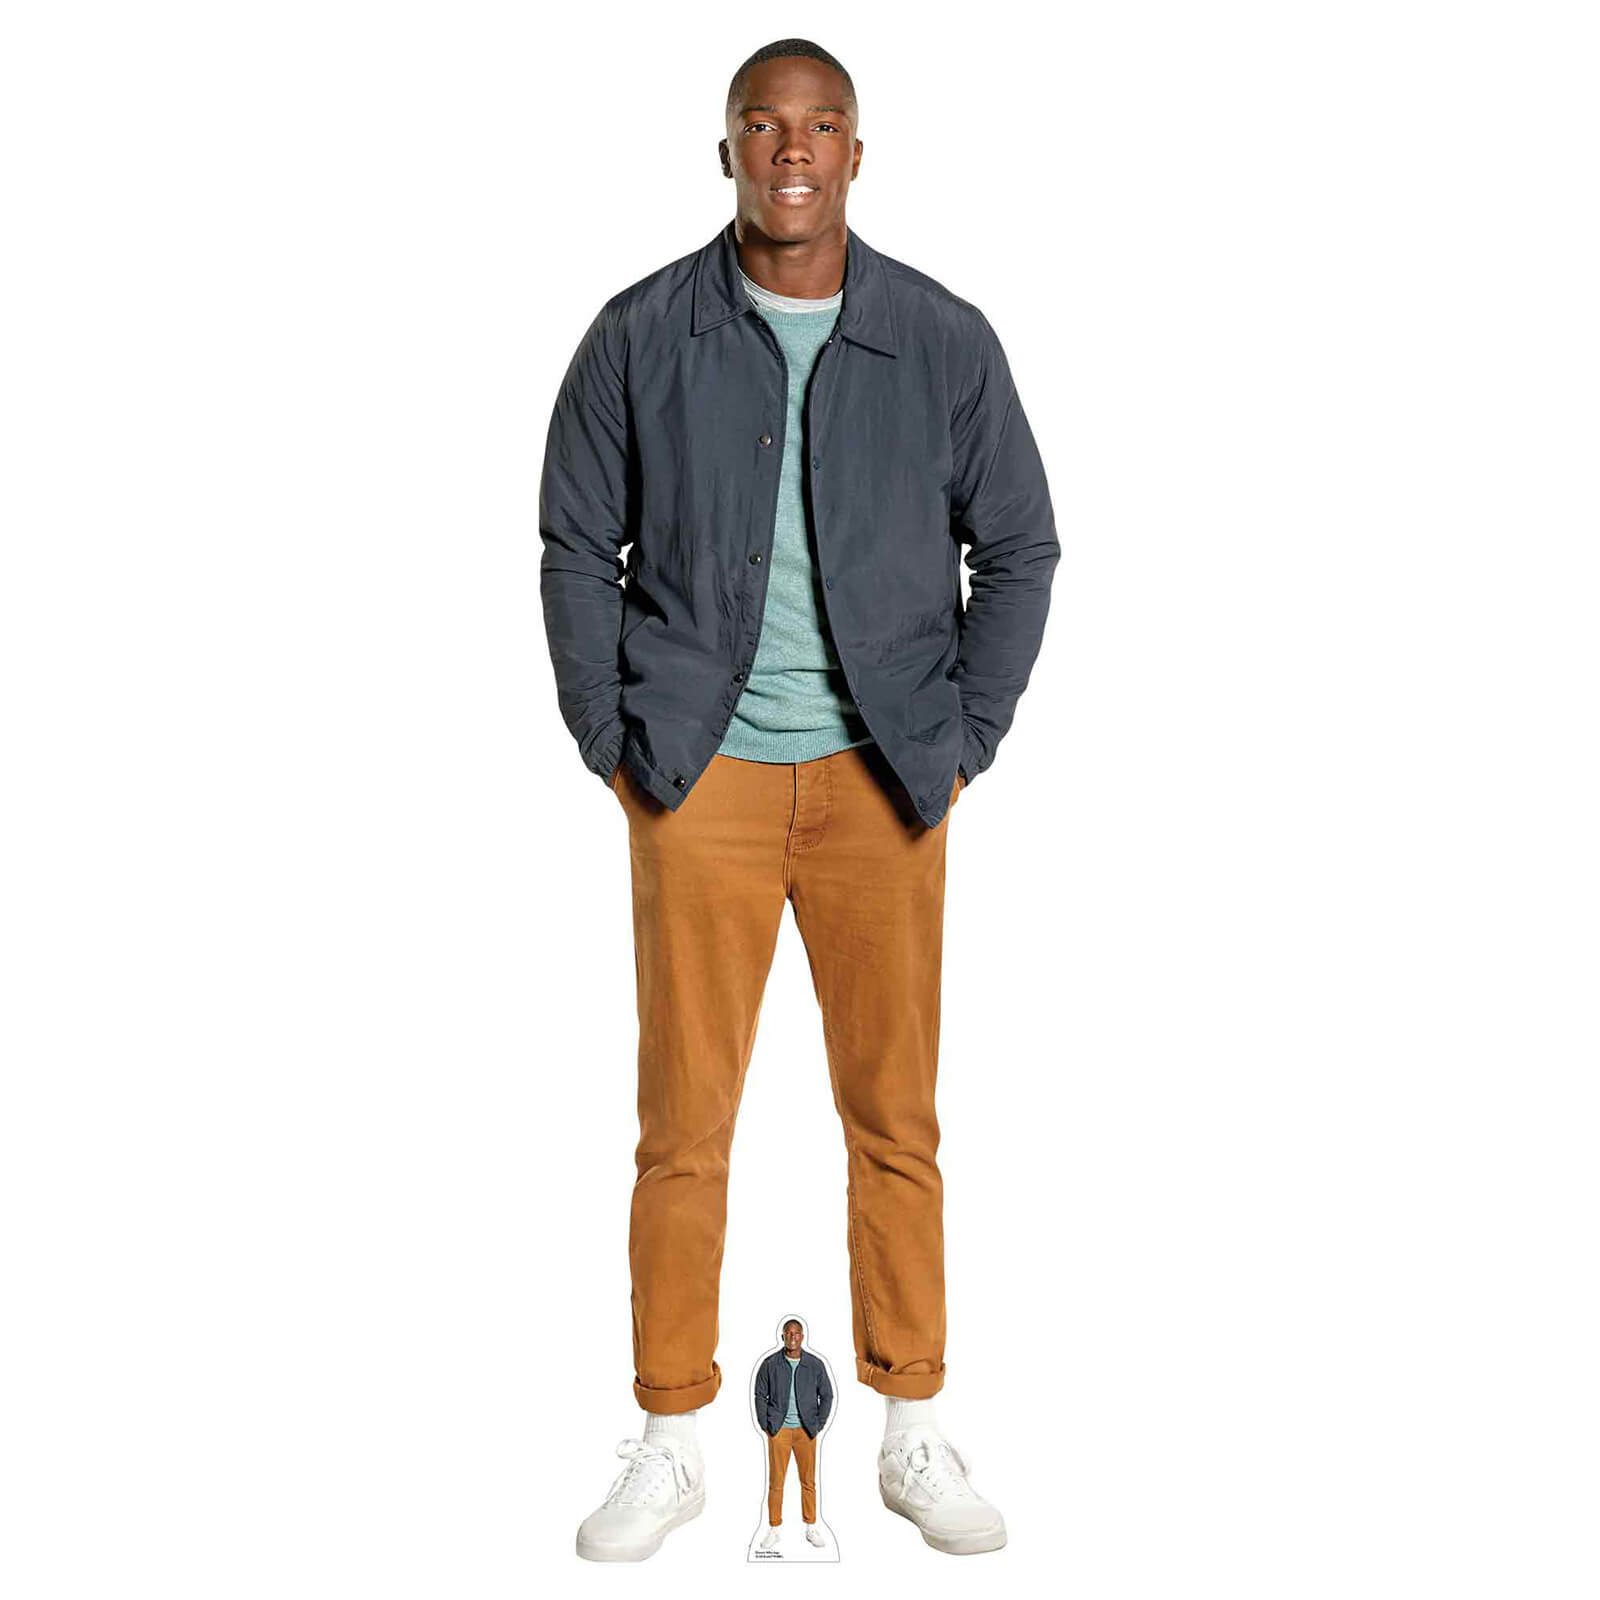 Tosin Cole (Ryan) Doctor Who Life Size Cut Out